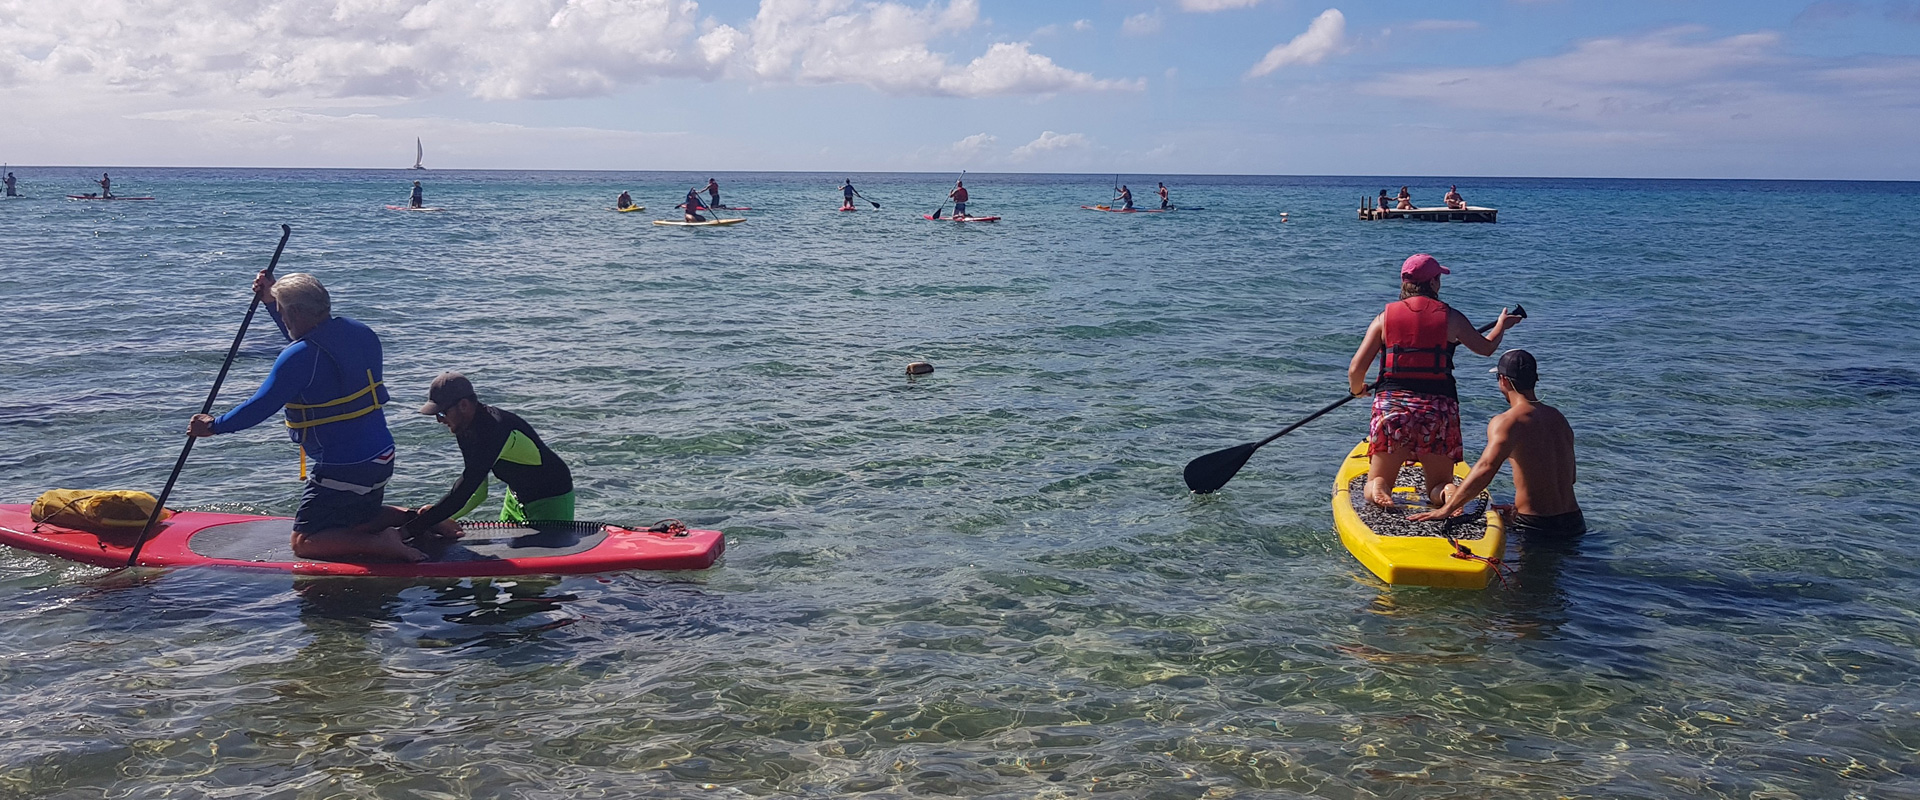 Group on Stand Up Paddle Board Tour in St. Kitts and Nevis